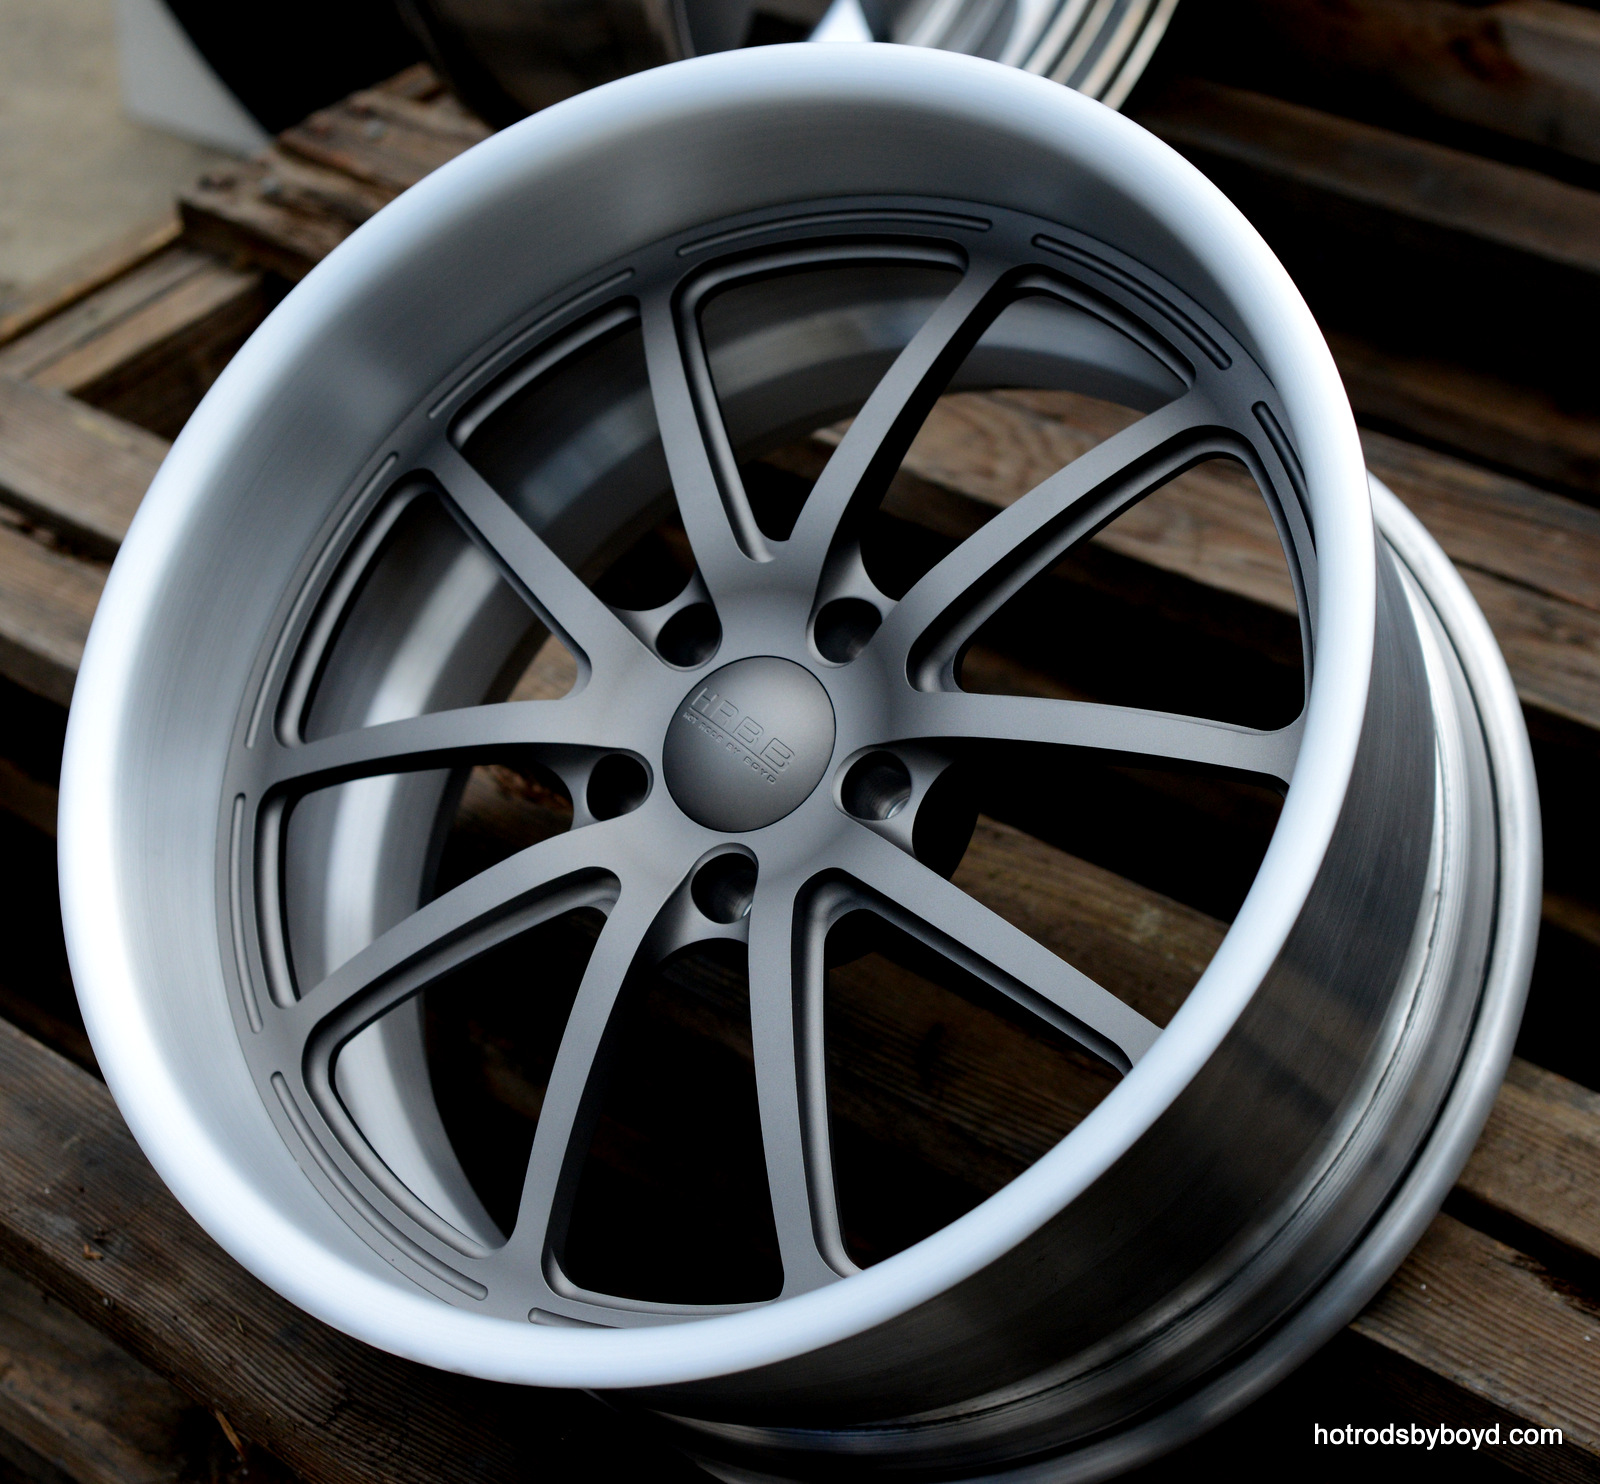 Pro Touring Wheels Billet Wheel The Official Distributor Of Hot